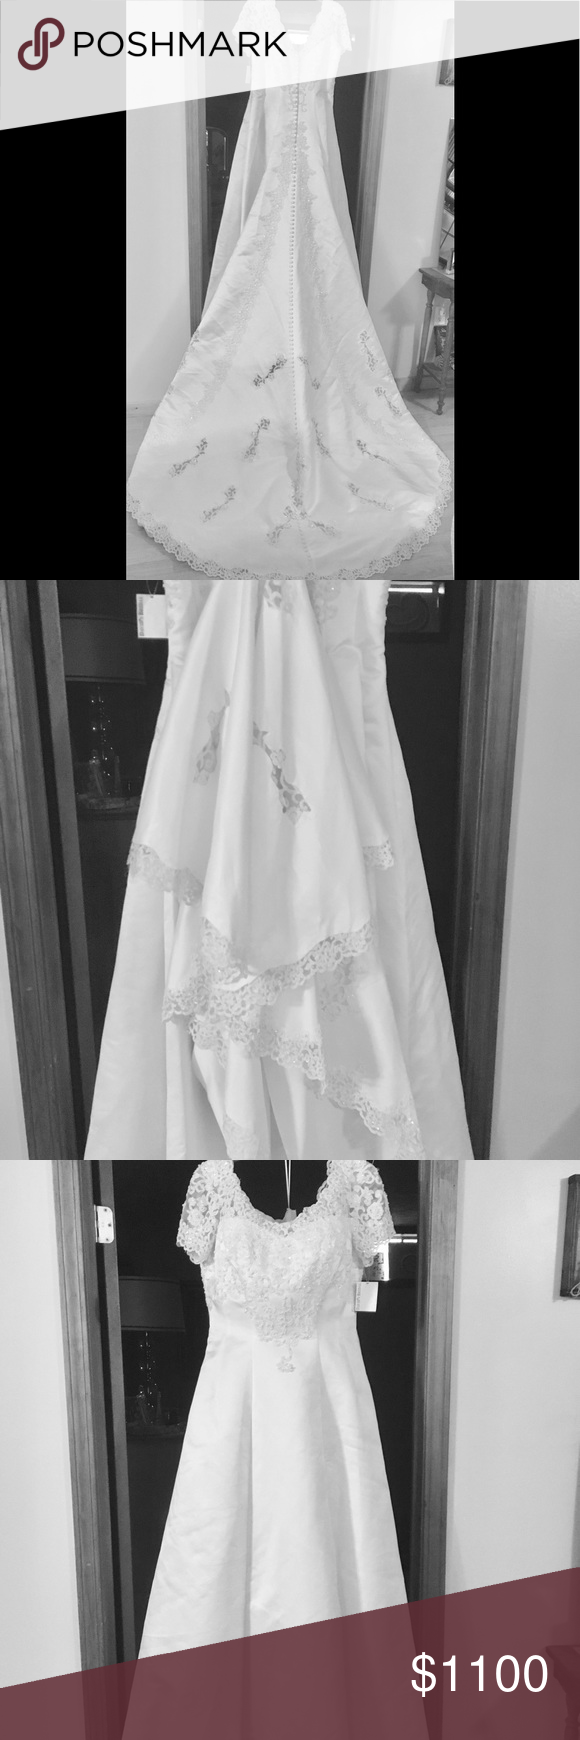 Plz share new exclusive lace bridal gown nwt in my posh